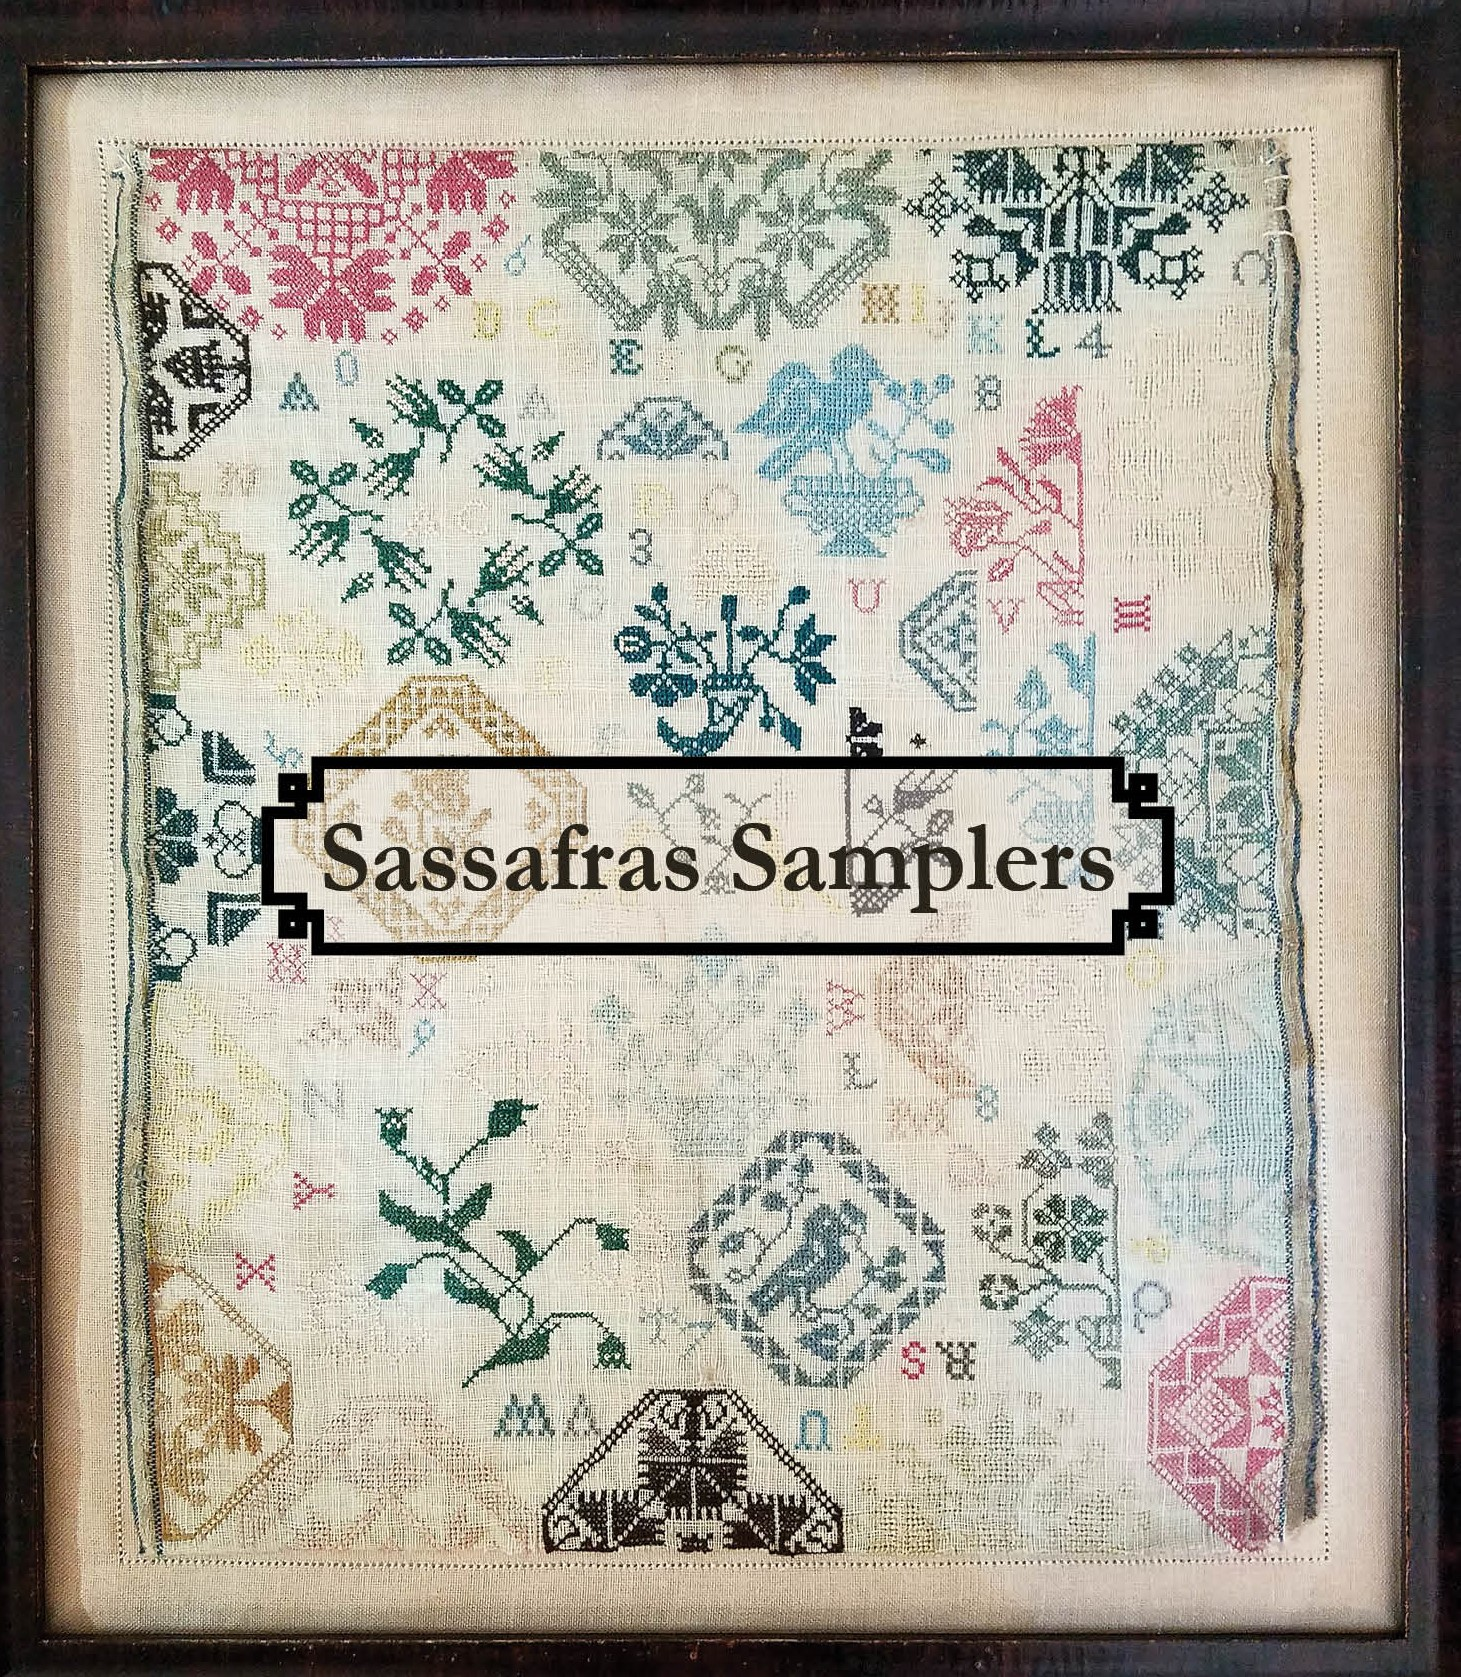 Fabric For Ac Bluebird Quaker Sampler Sassafras Samplers